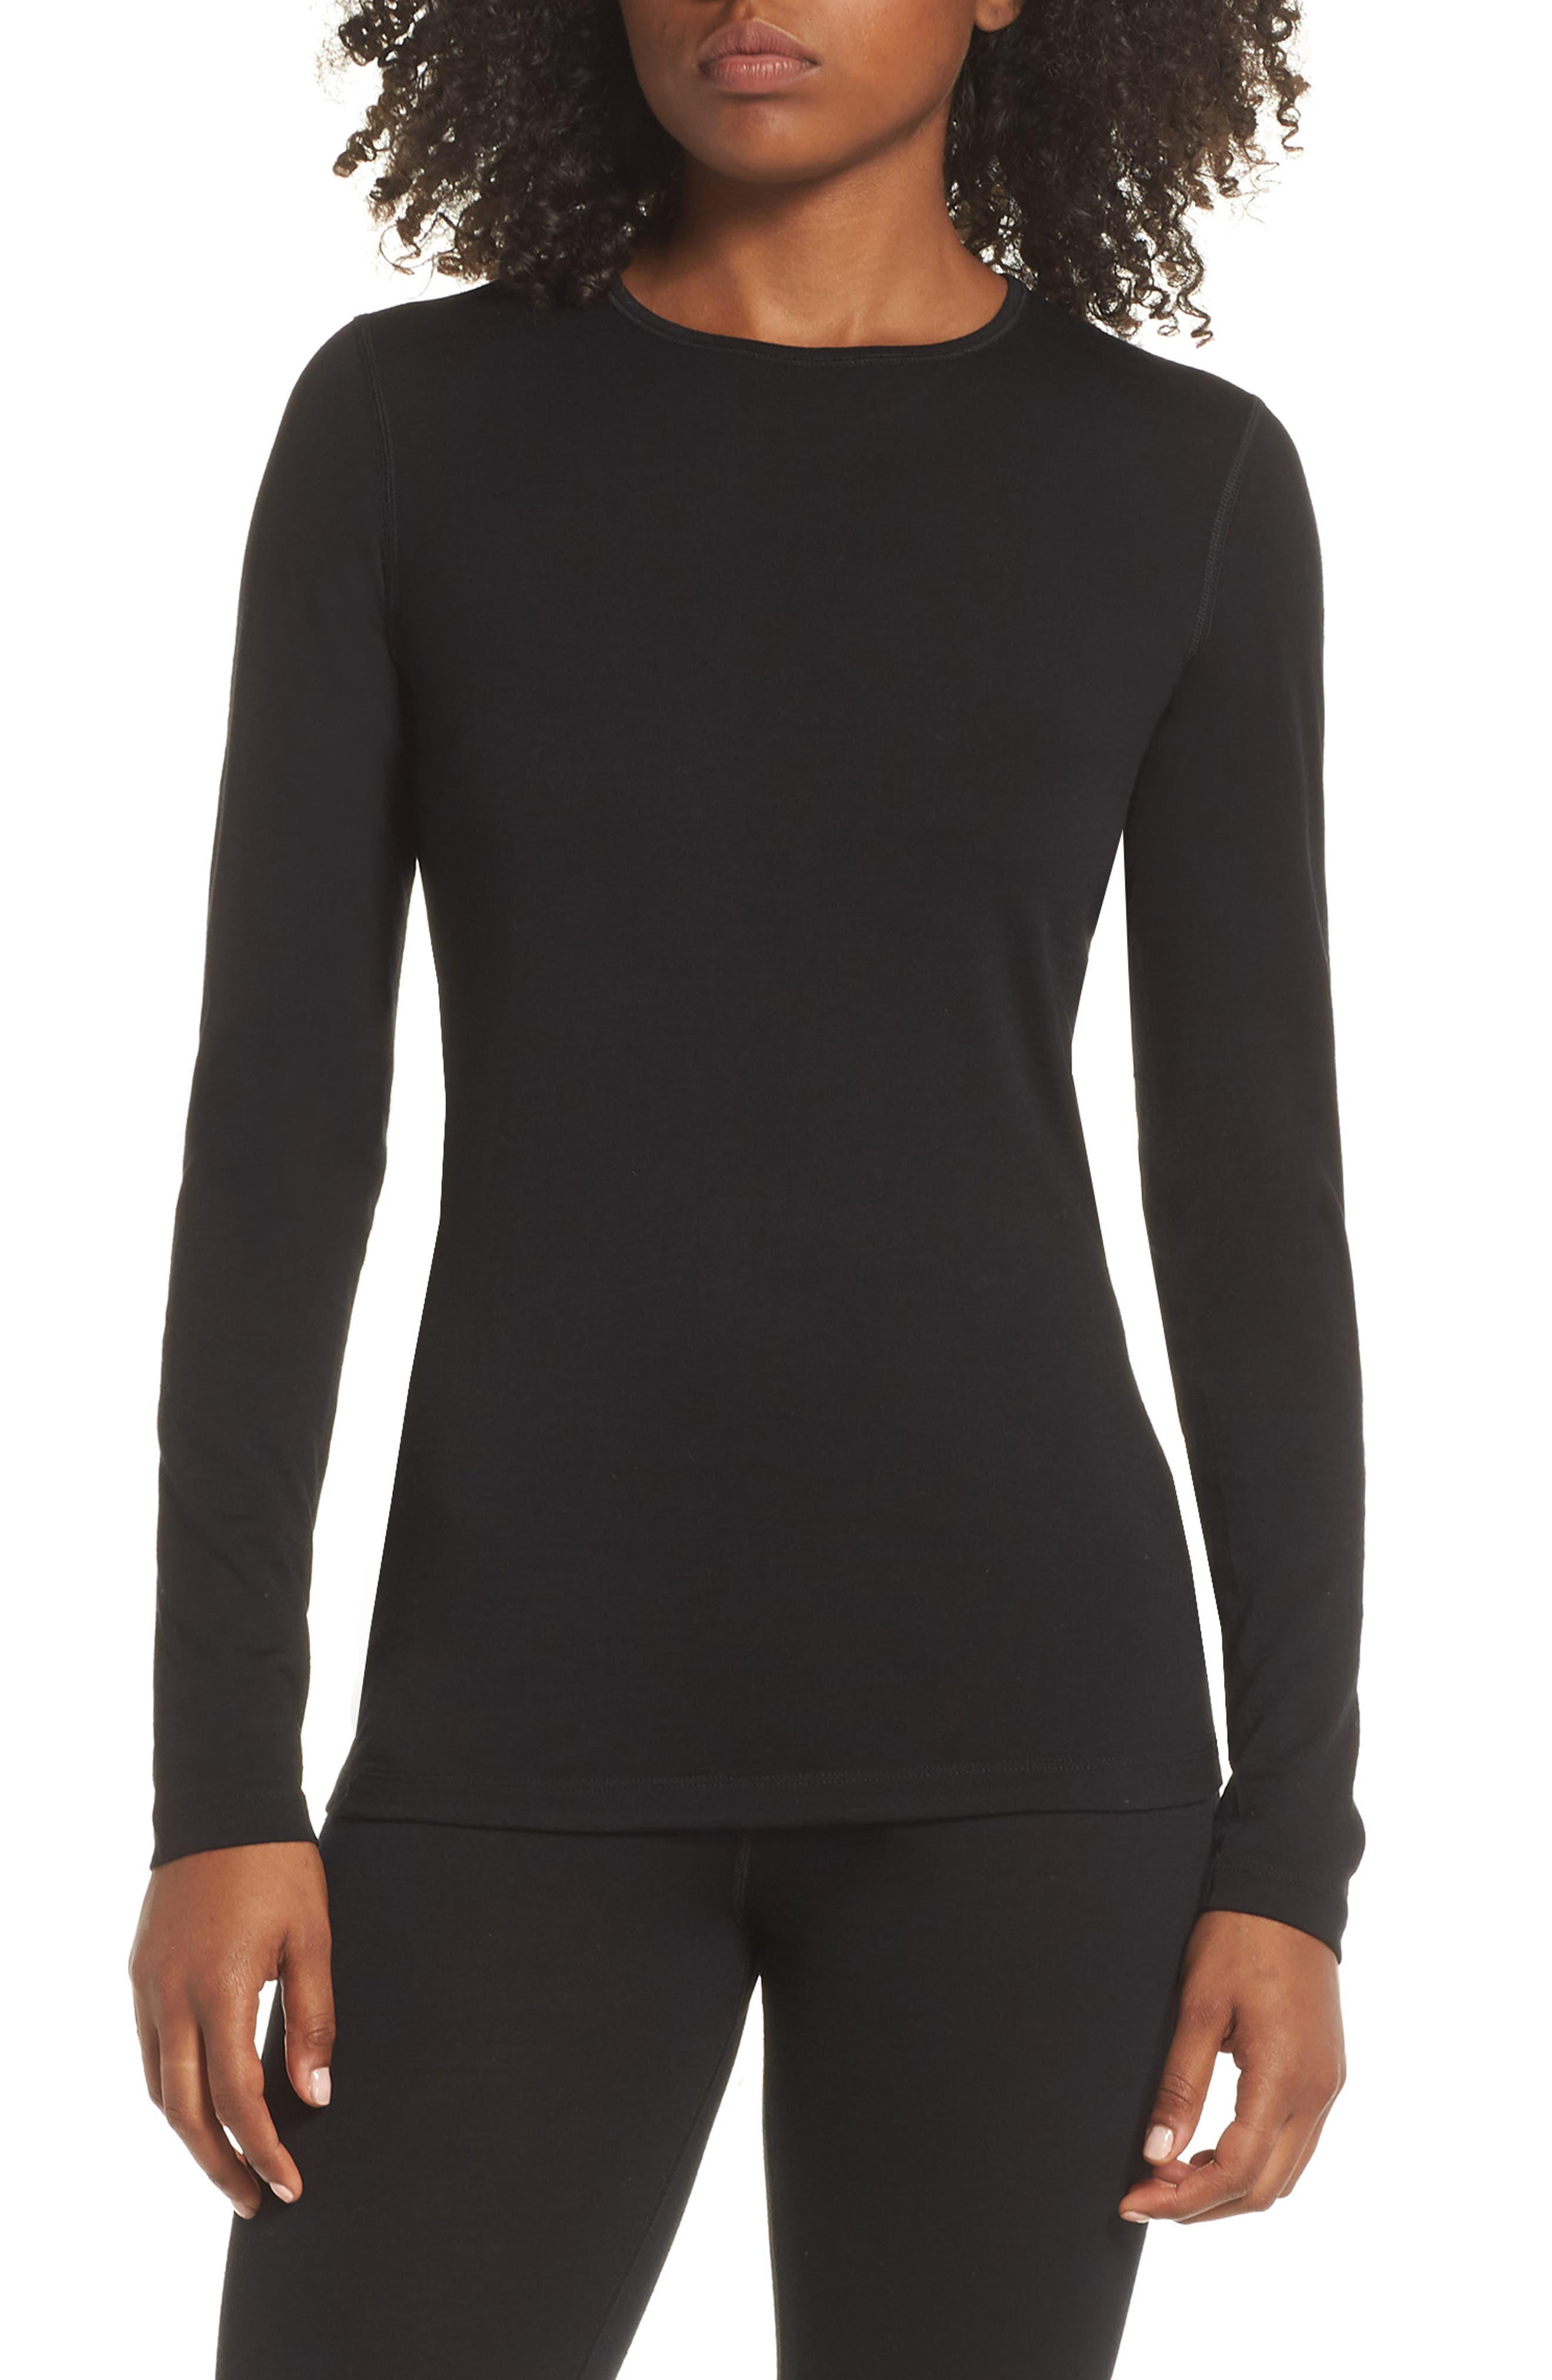 Oasis Long Sleeve Merino Wool Base Layer Tee,                             Main thumbnail 1, color,                             BLACK